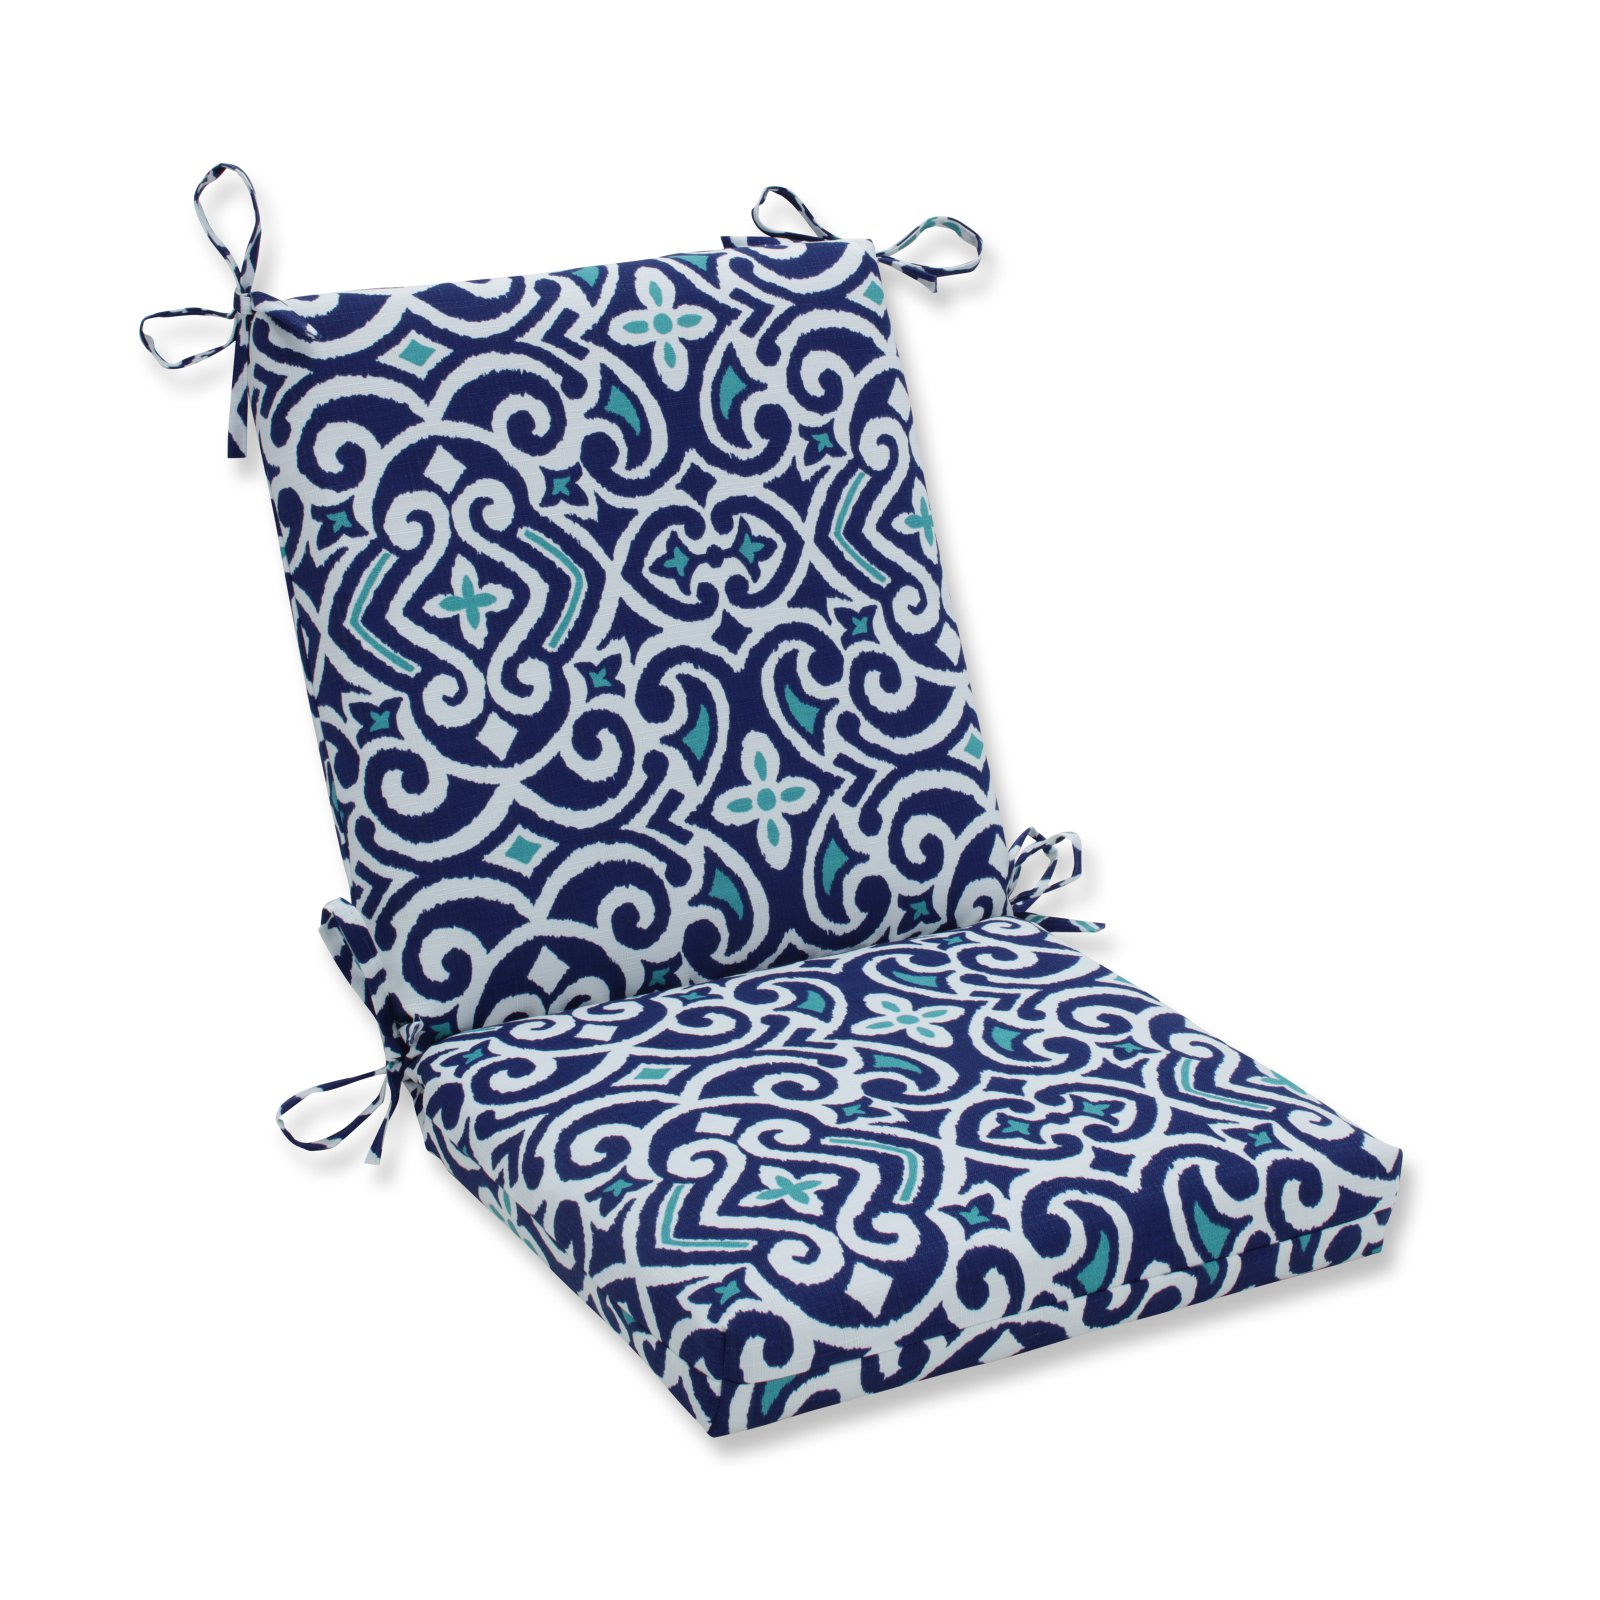 Pillow Perfect Outdoor/Indoor New Damask Marine Squared Corners Chair Cushion